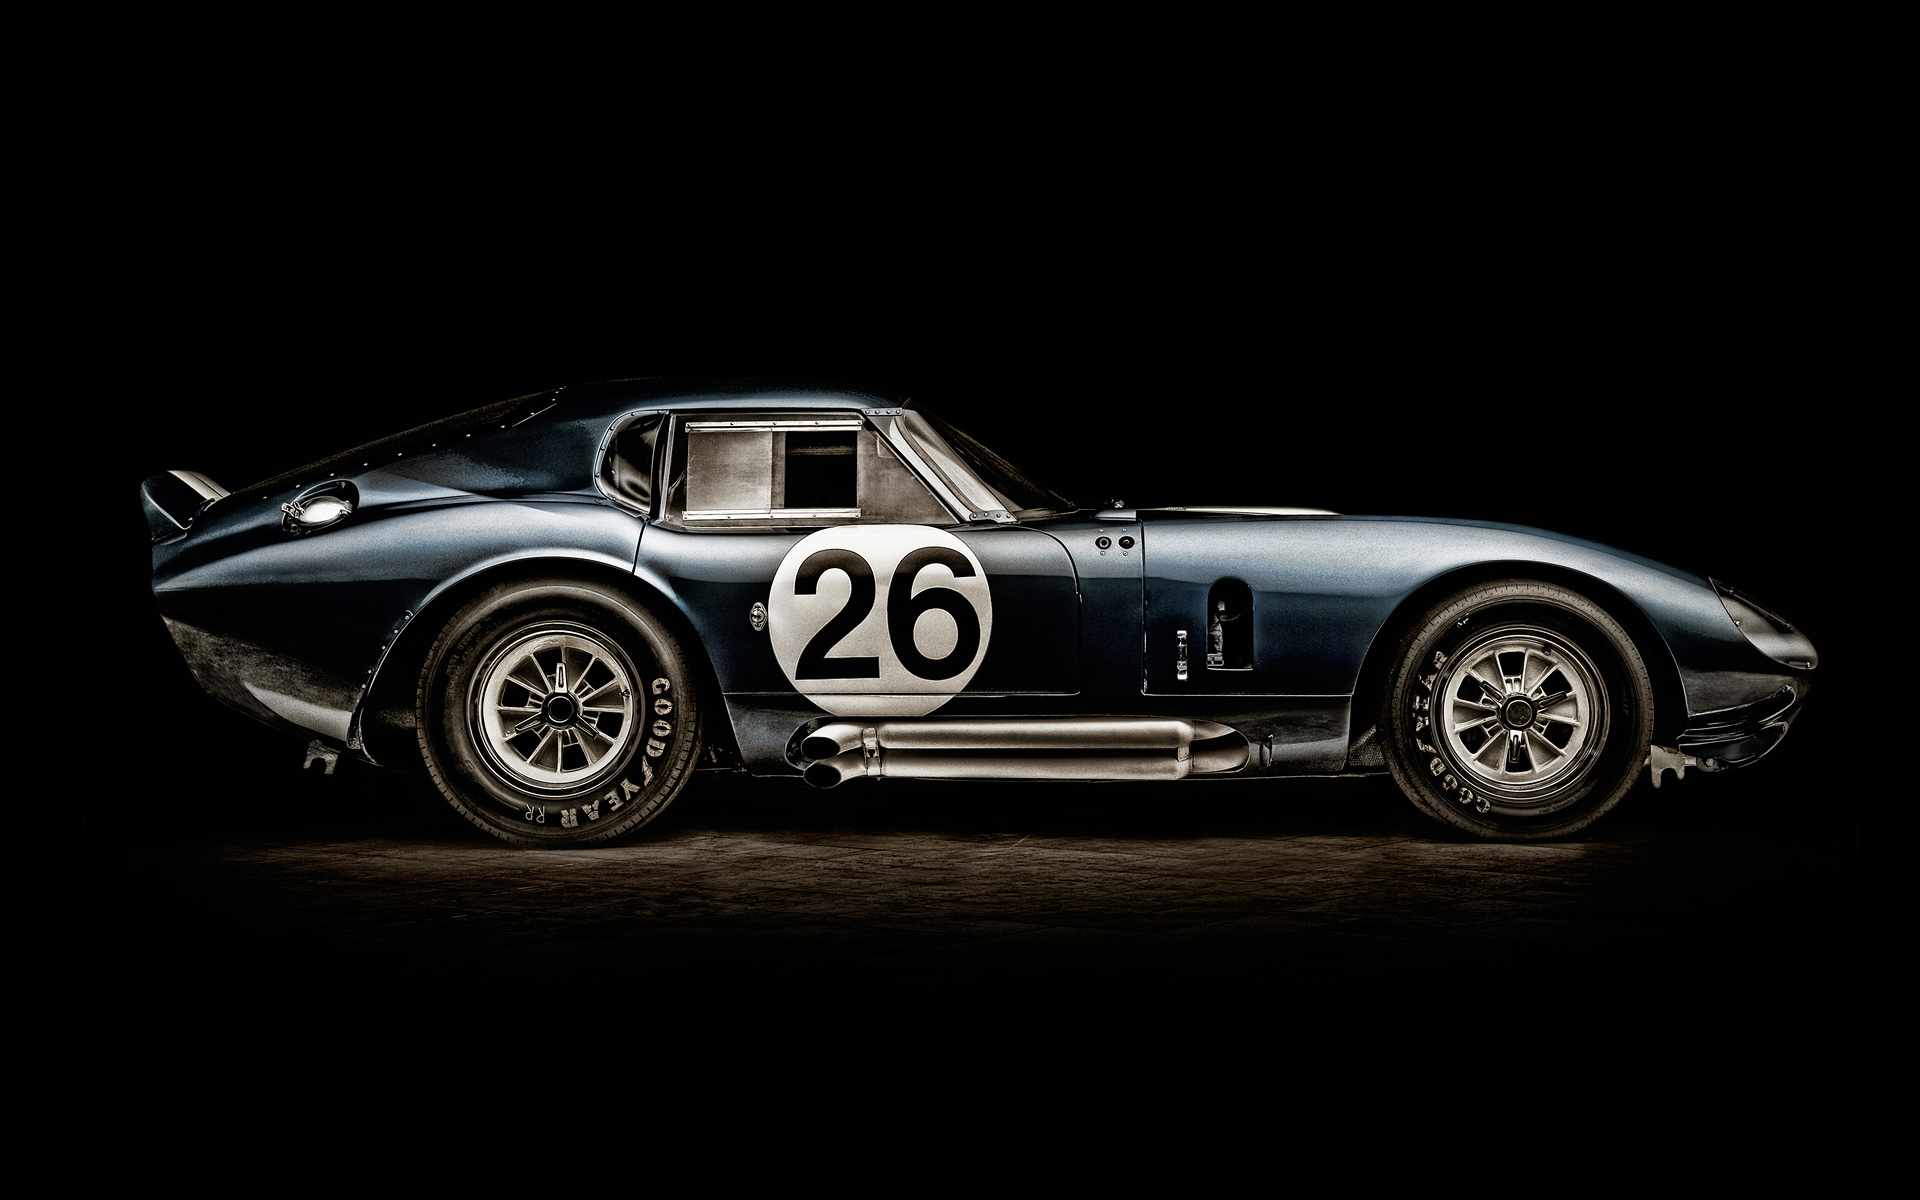 Shelby Daytona Coupe Studio photographer Blair Bunting